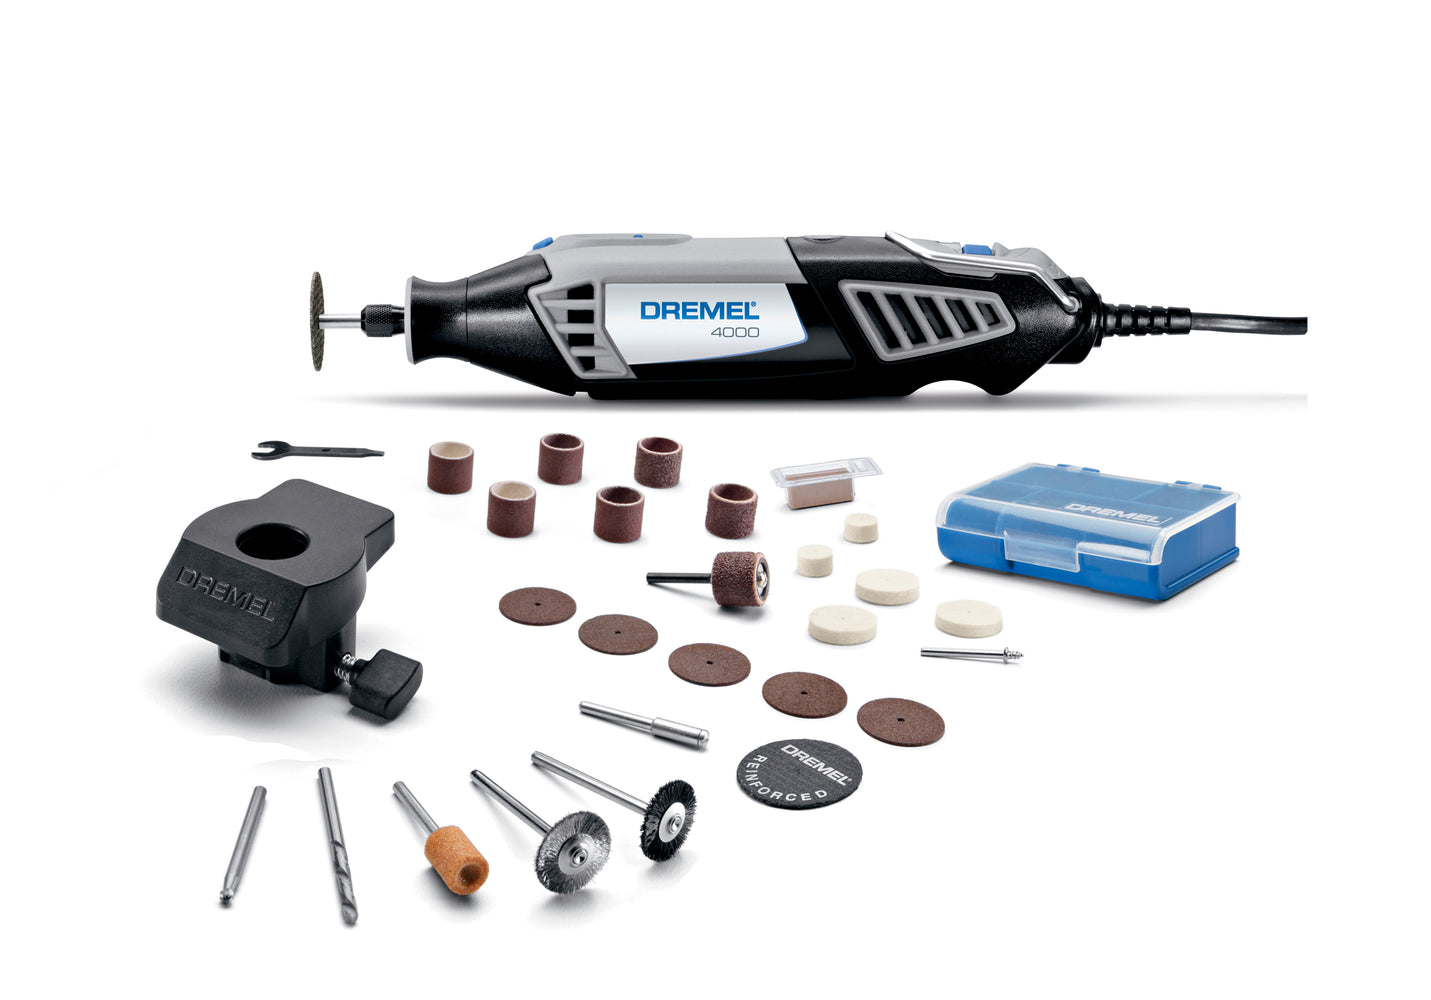 Dremel 4000-1/26 1.6 Amp Corded Variable Speed Rotary Tool, 1 Attachment And 26 Accessories